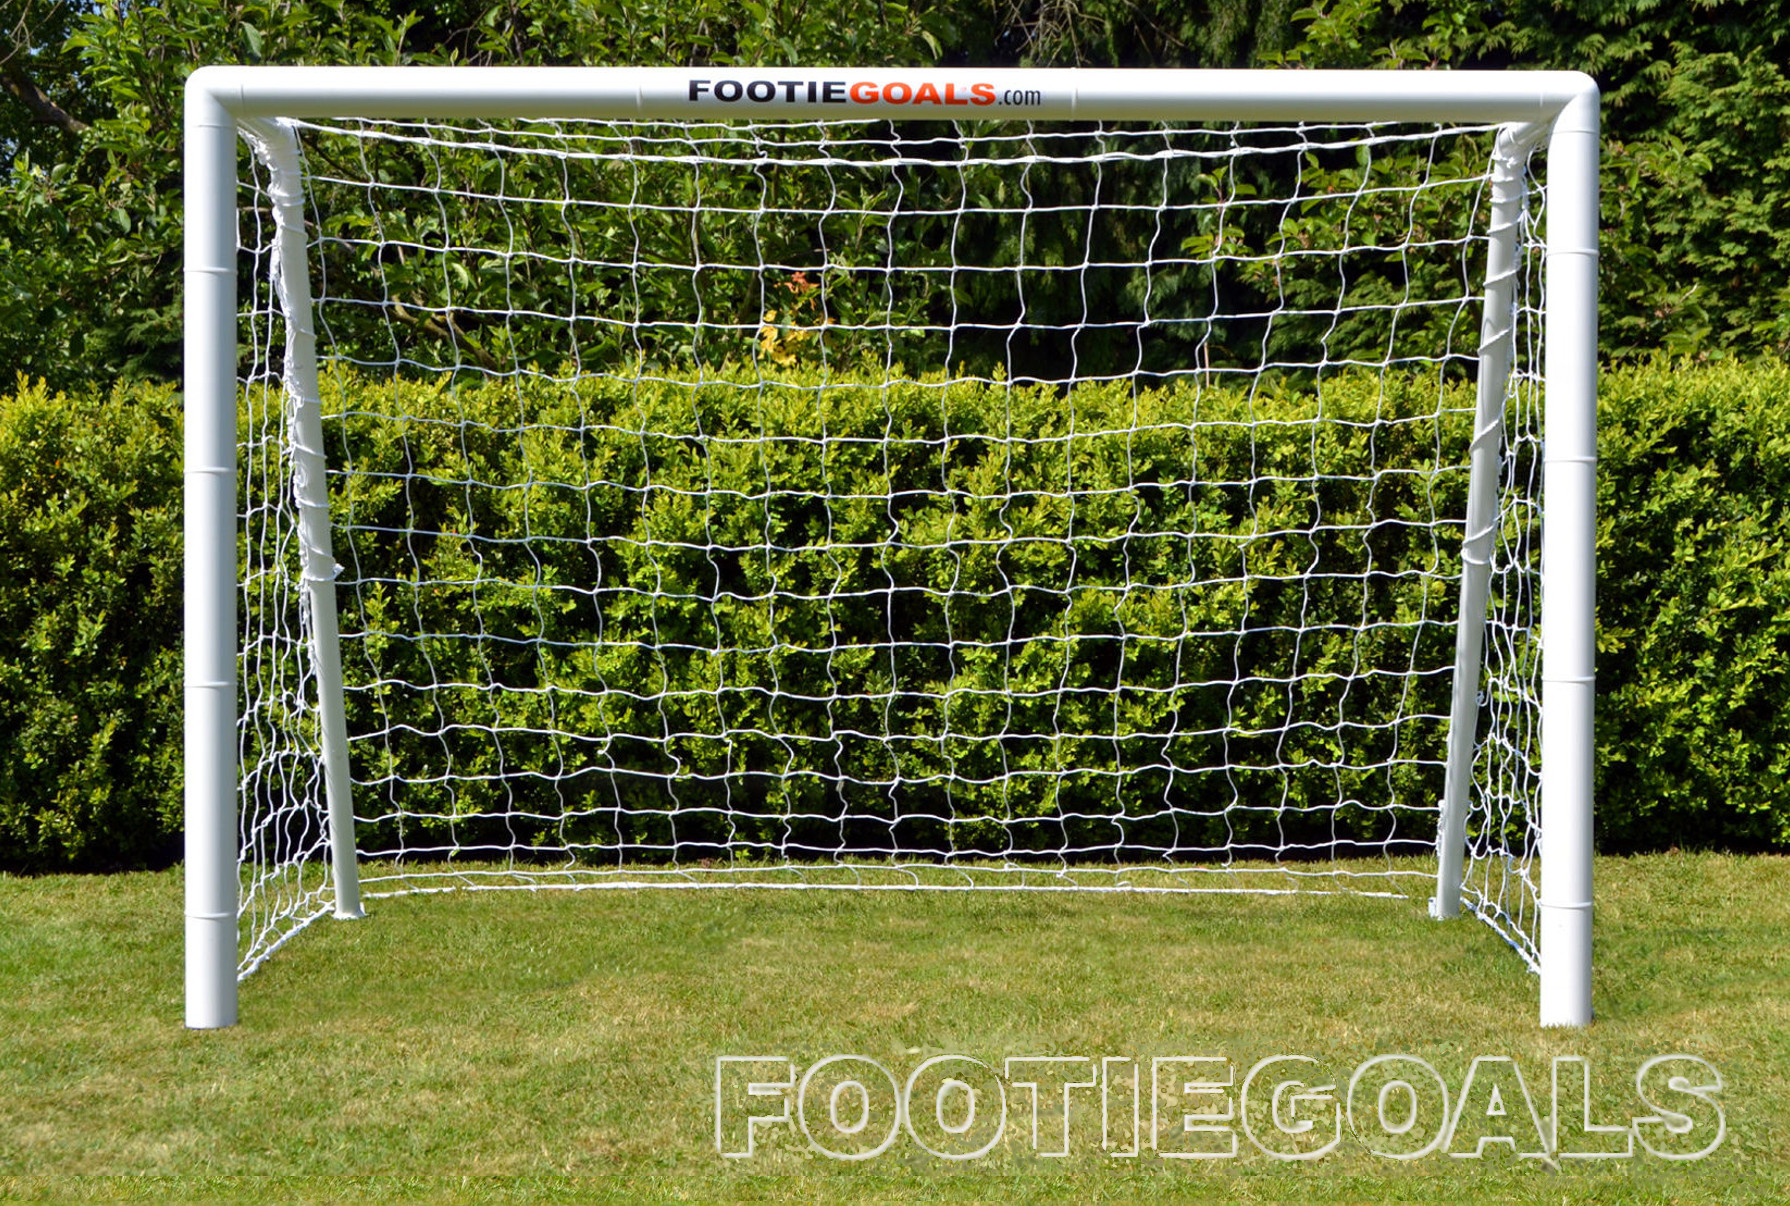 Garden Goals, Kids Goals, Kids Goal posts, soccer football goalpost 6 x 4